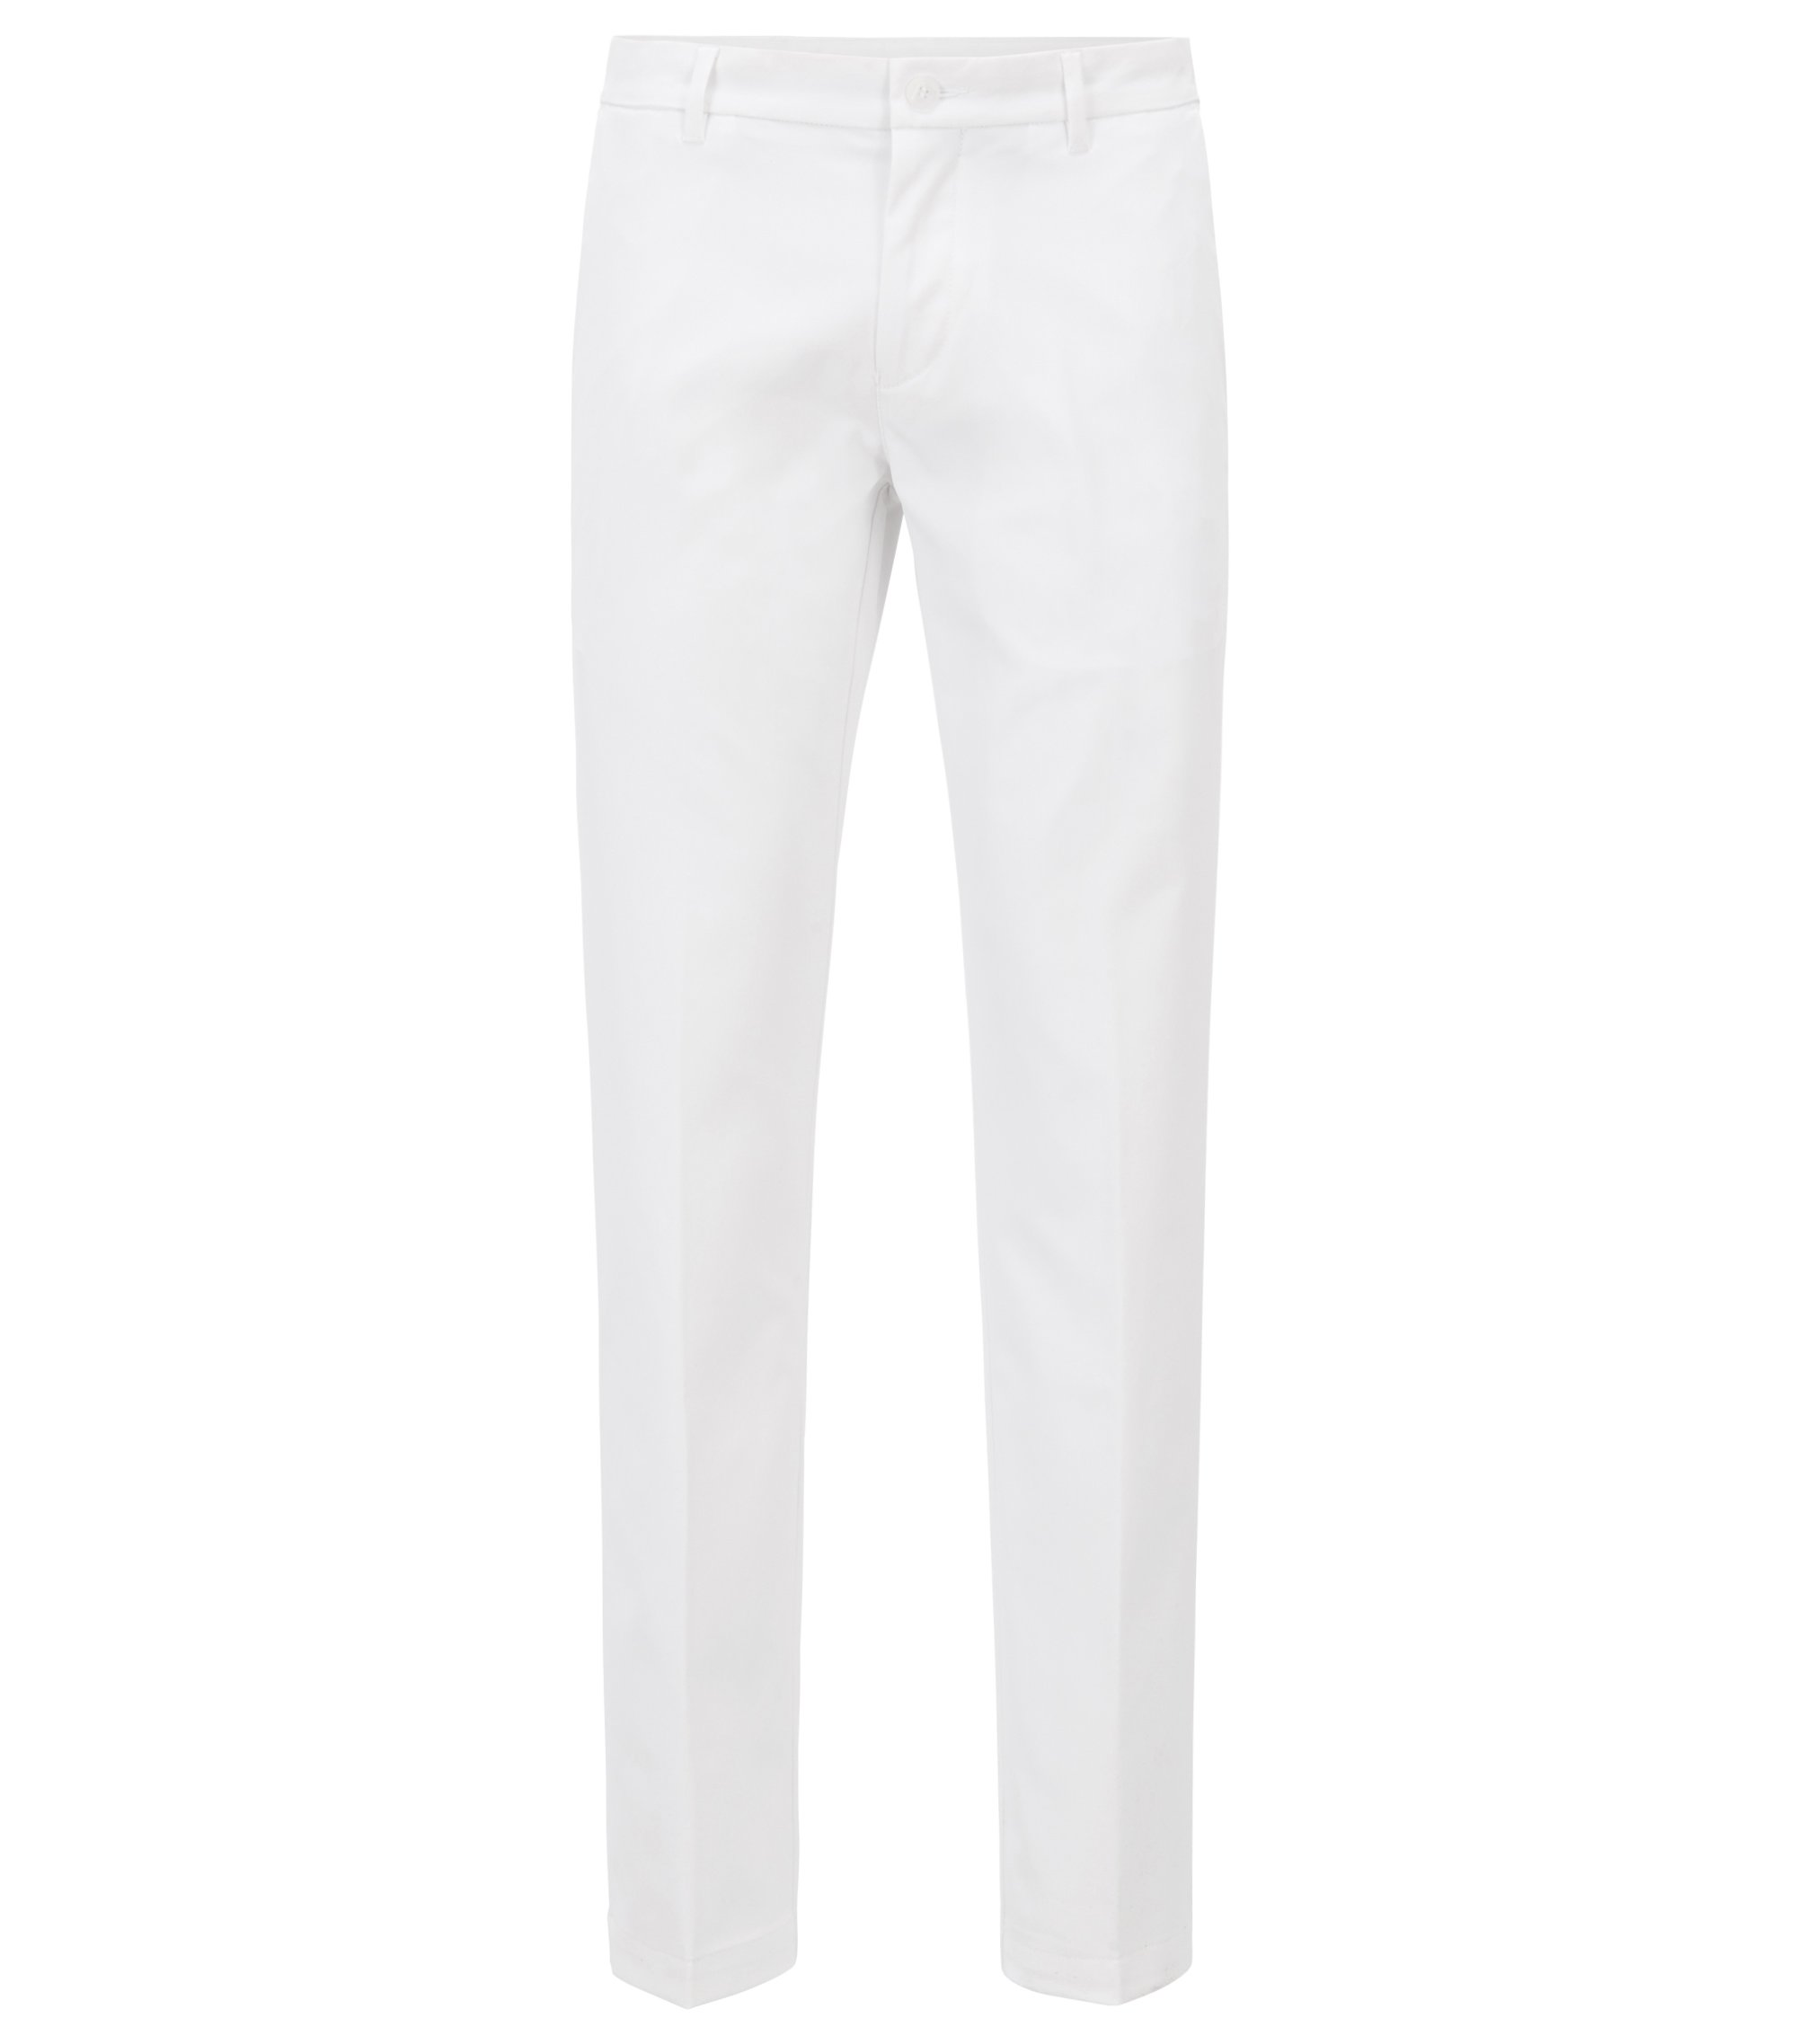 Pantalon Extra Slim Fit en tissu technique, Blanc